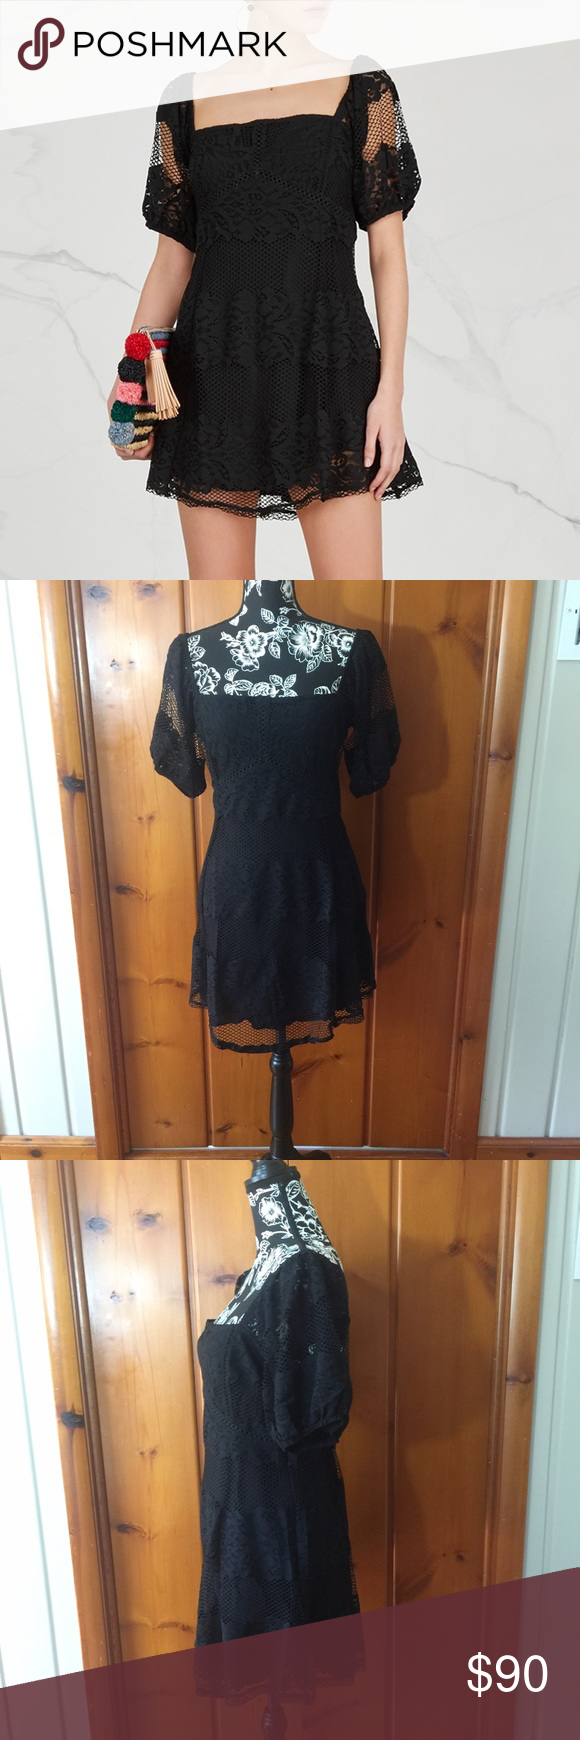 ea204de4e9af NWT FREE PEOPLE BE YOUR BABY LACE MINI DRESS FREE PEOPLE BE YOUR BABY LACE  MINI DRESS NWT Size Large Free People Dresses Mini